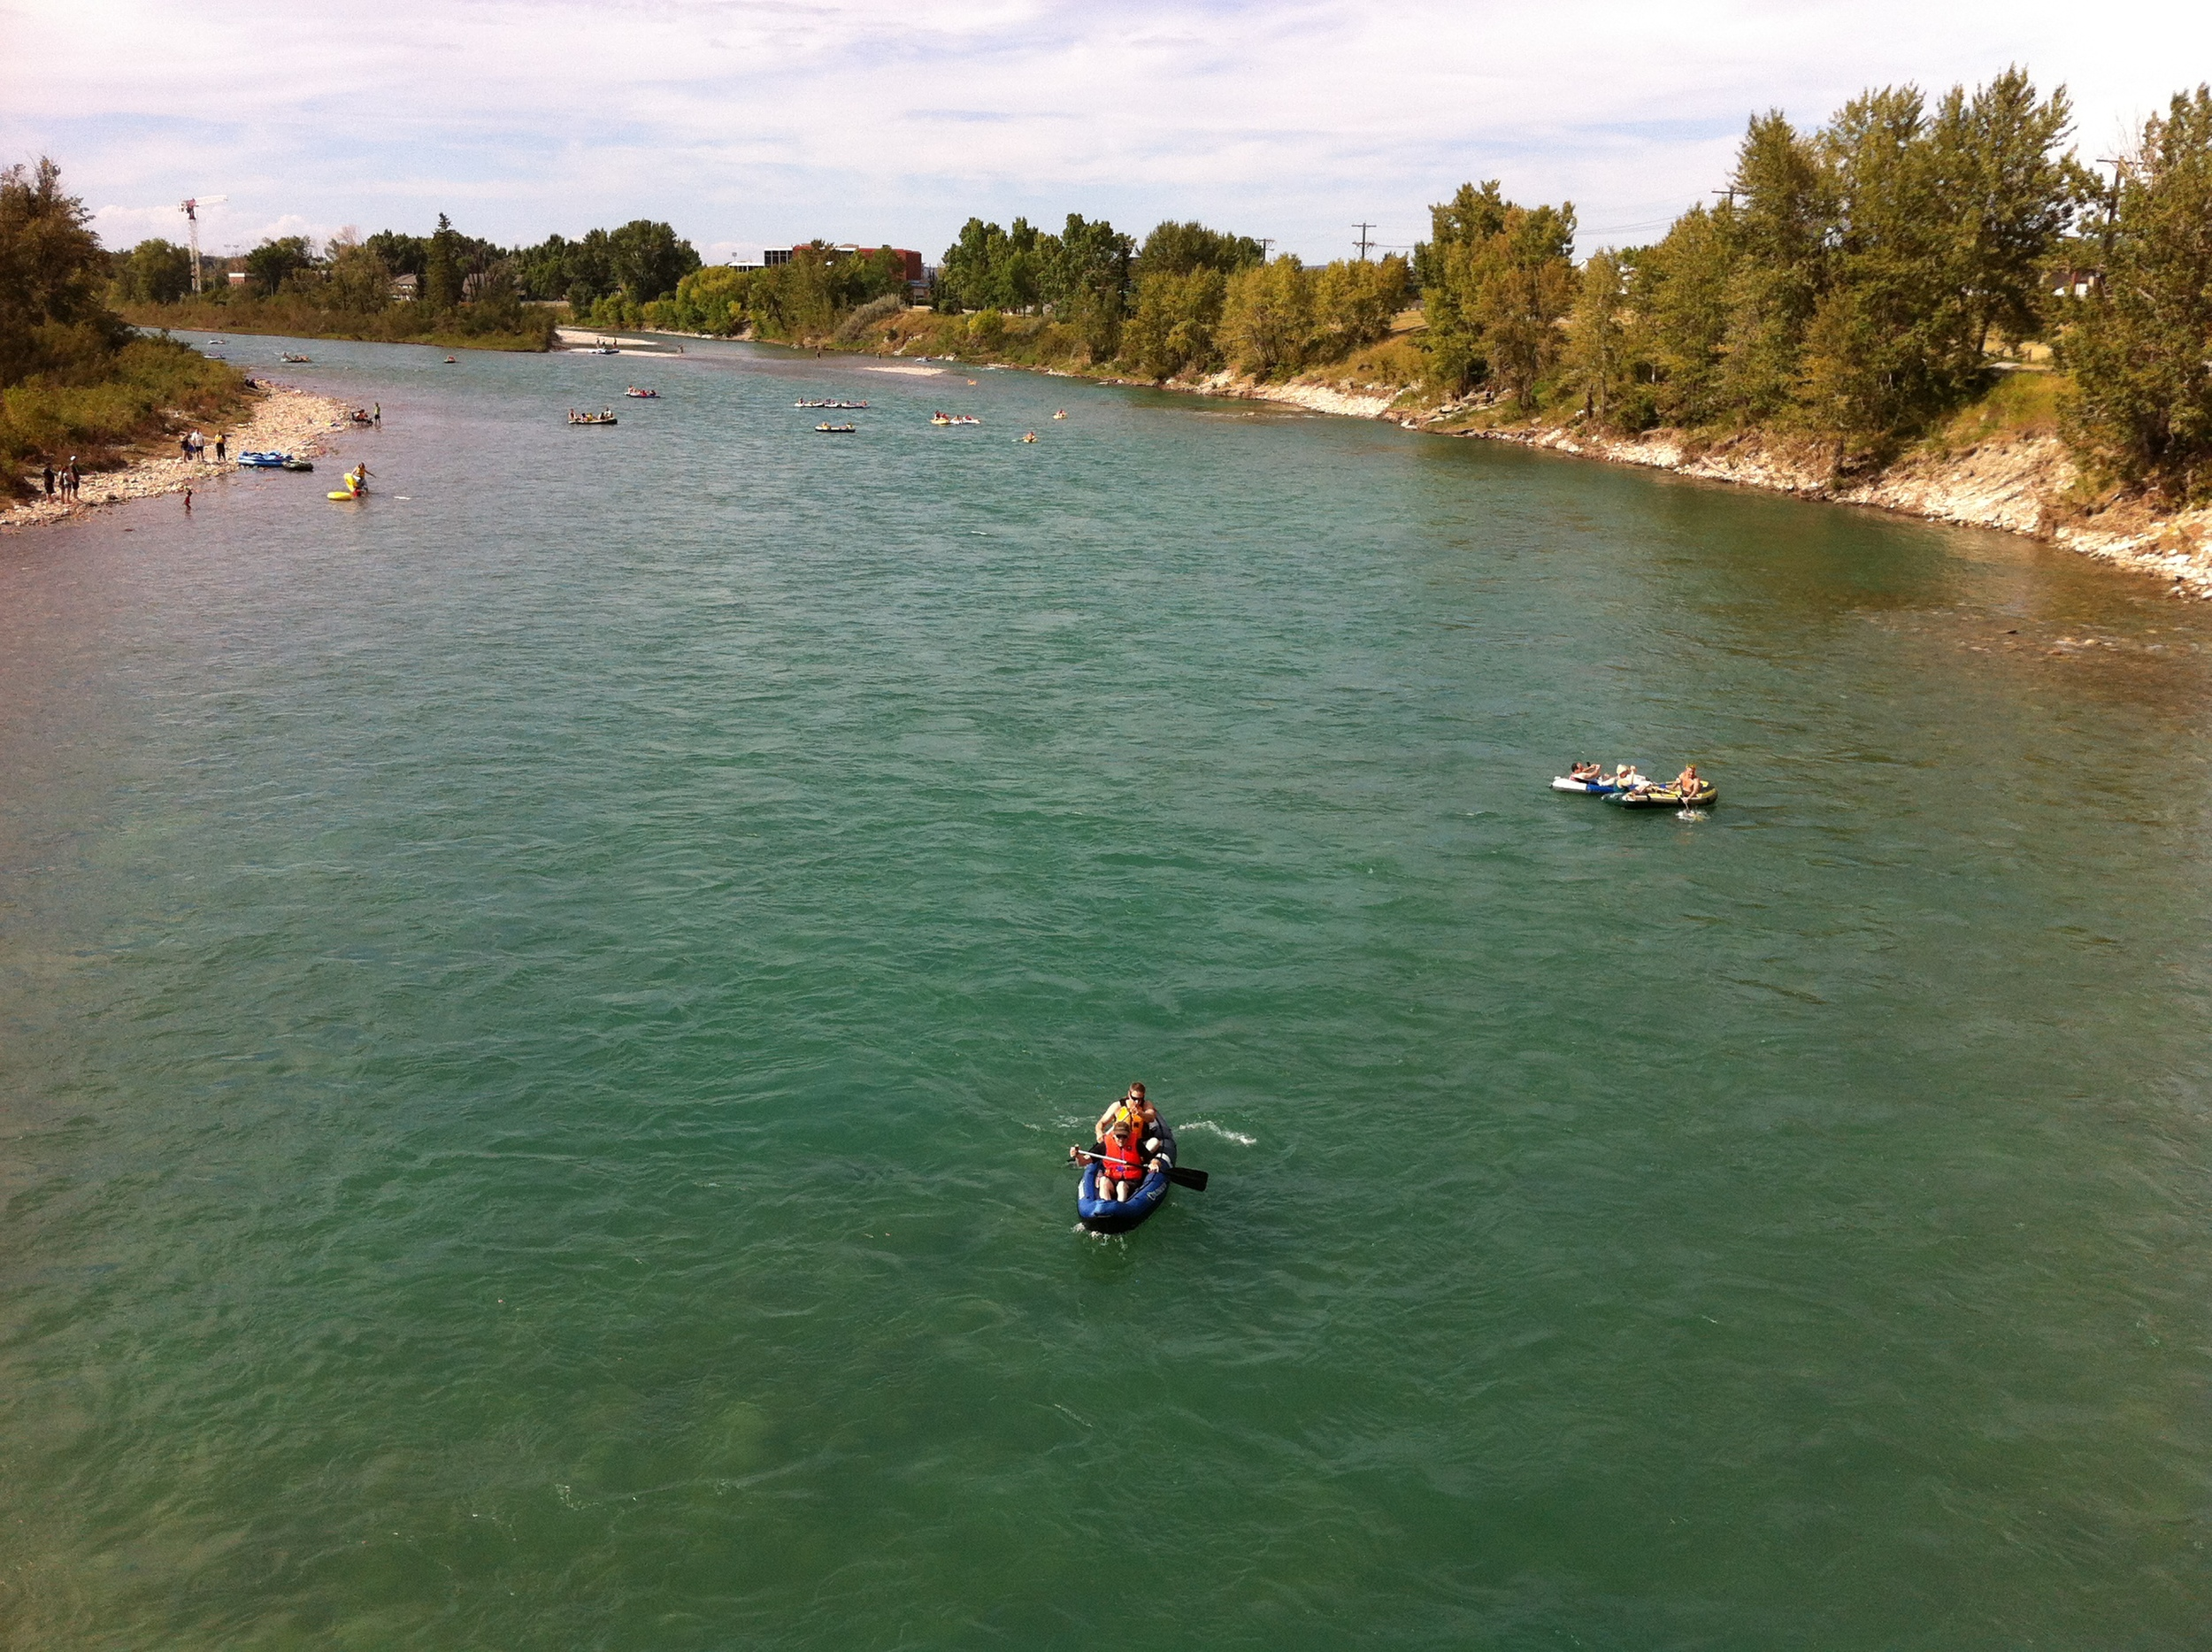 Calgarians love their river also be it floating, paddling, fishing or swimming.